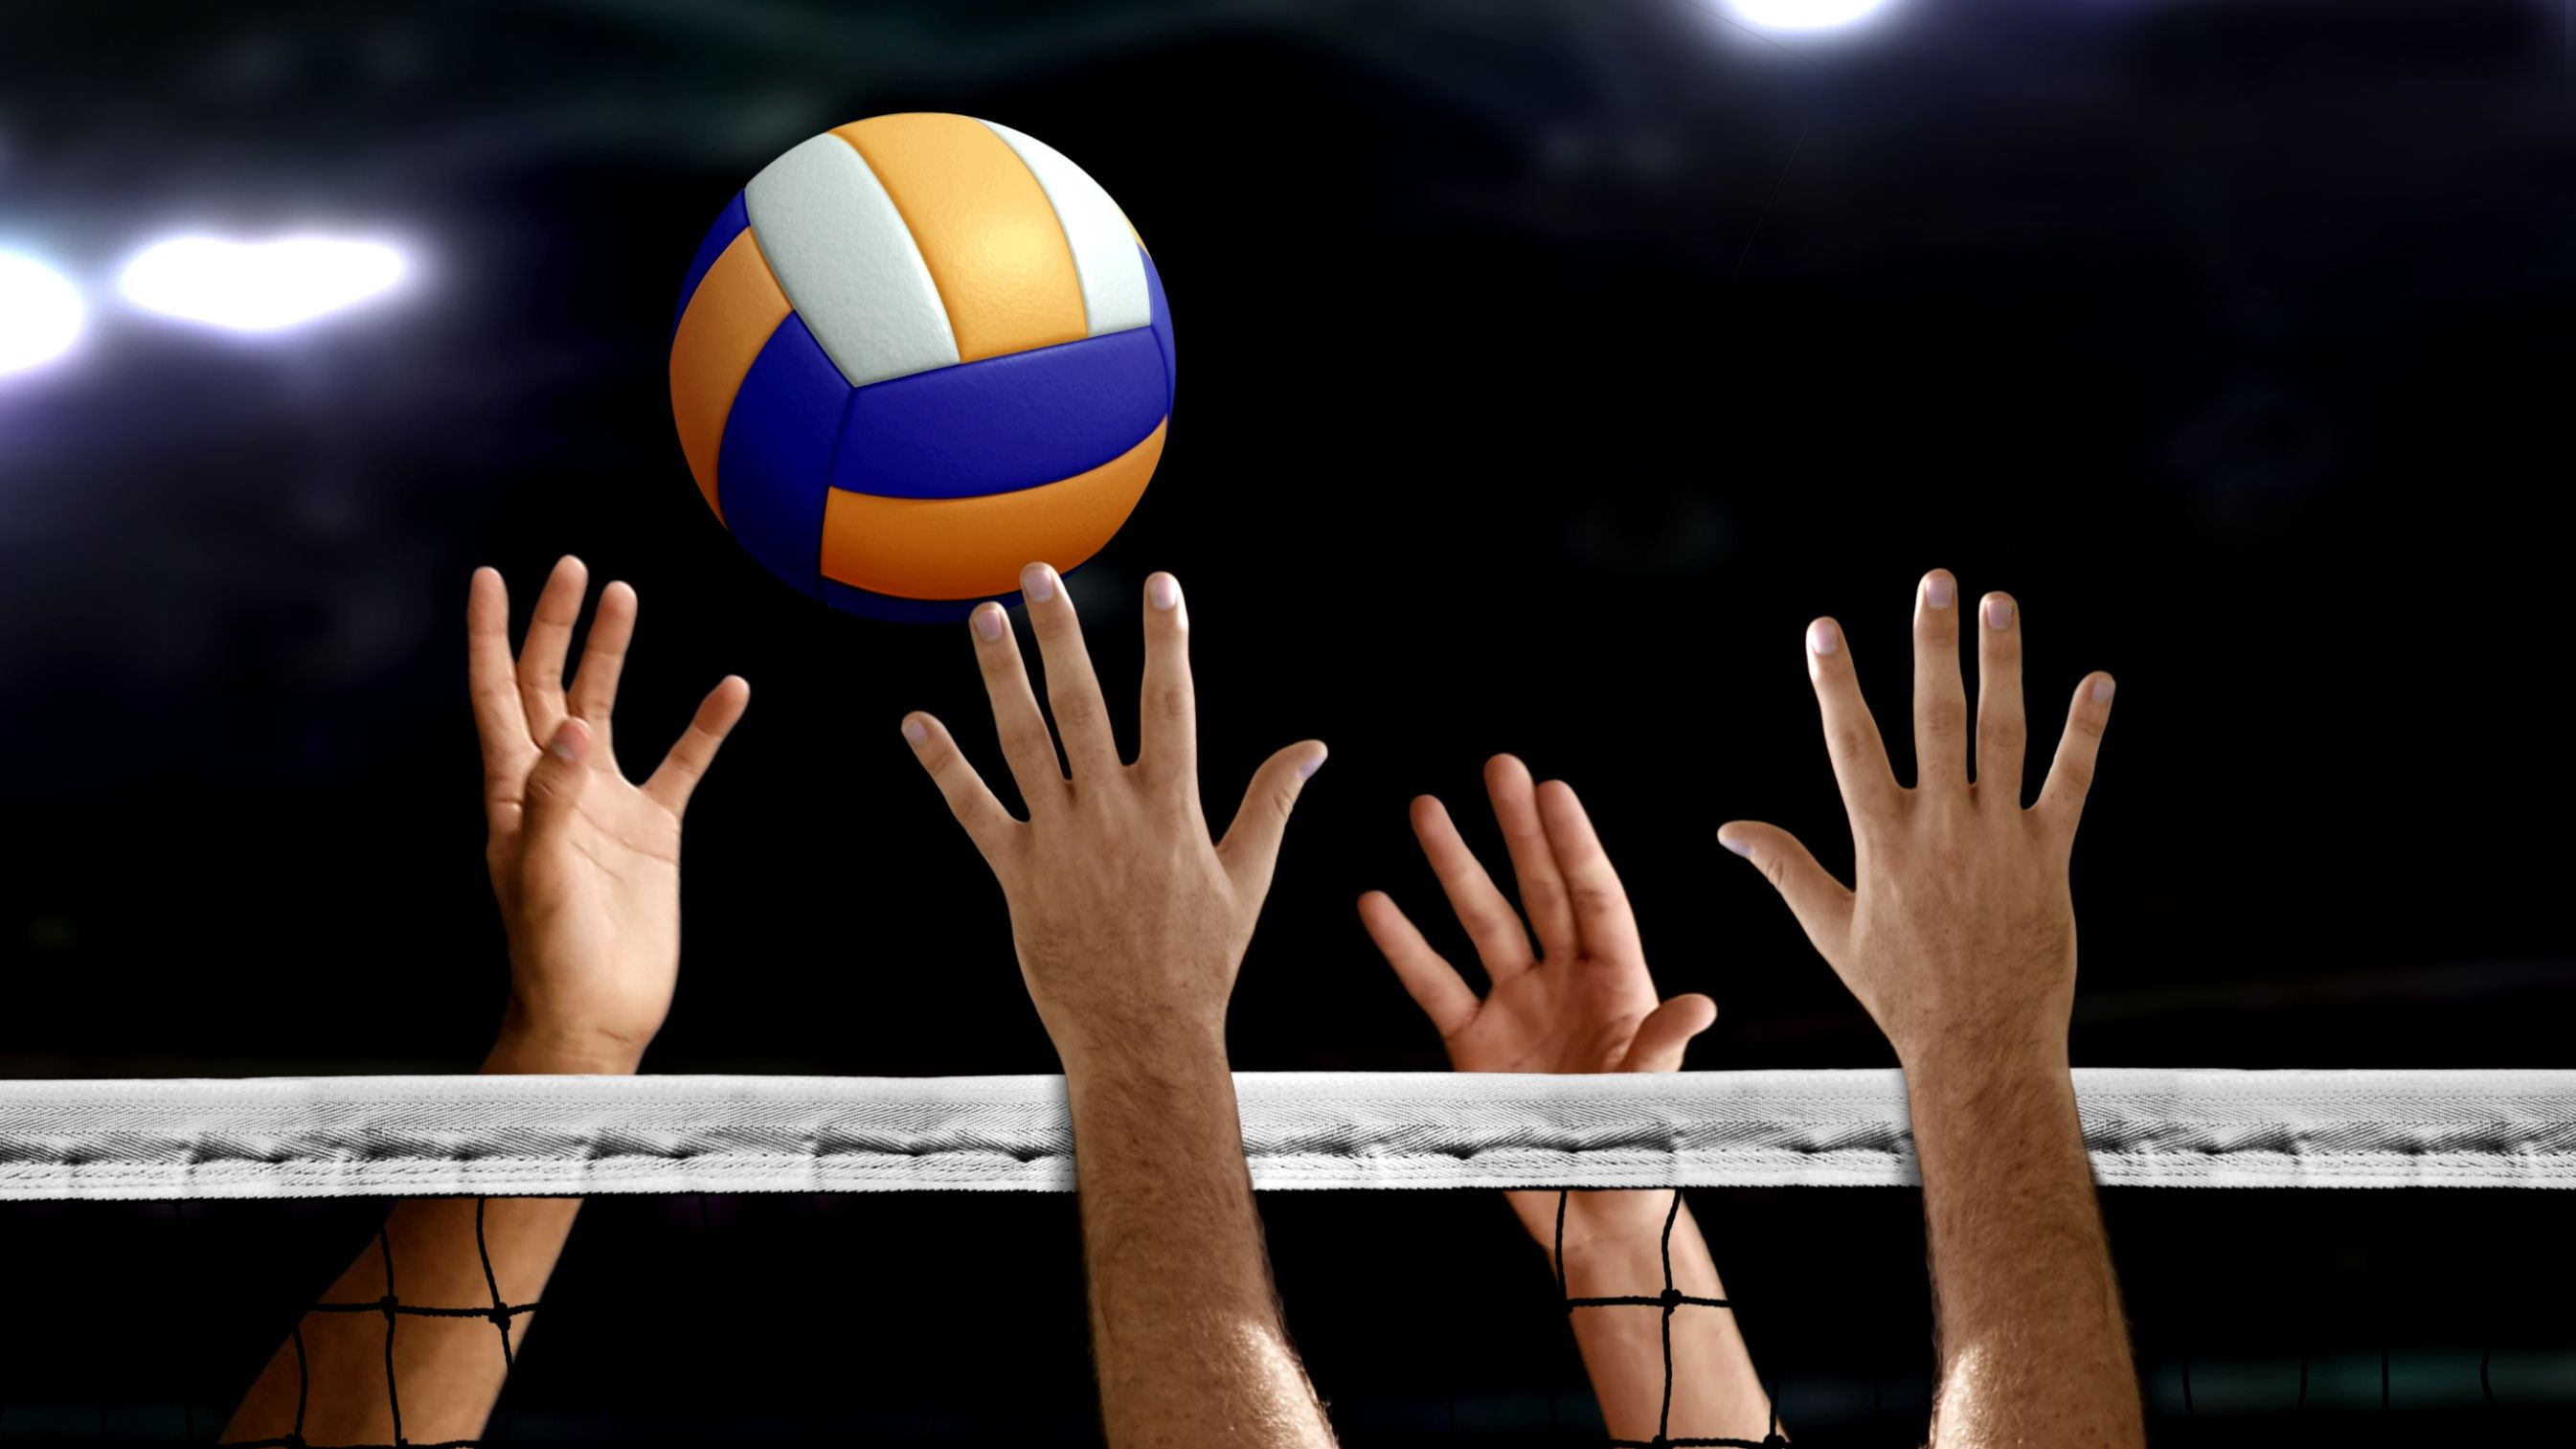 Pin By Nir G On Volleyball In 2020 Volleyball Players Volleyball Famous Volleyball Players